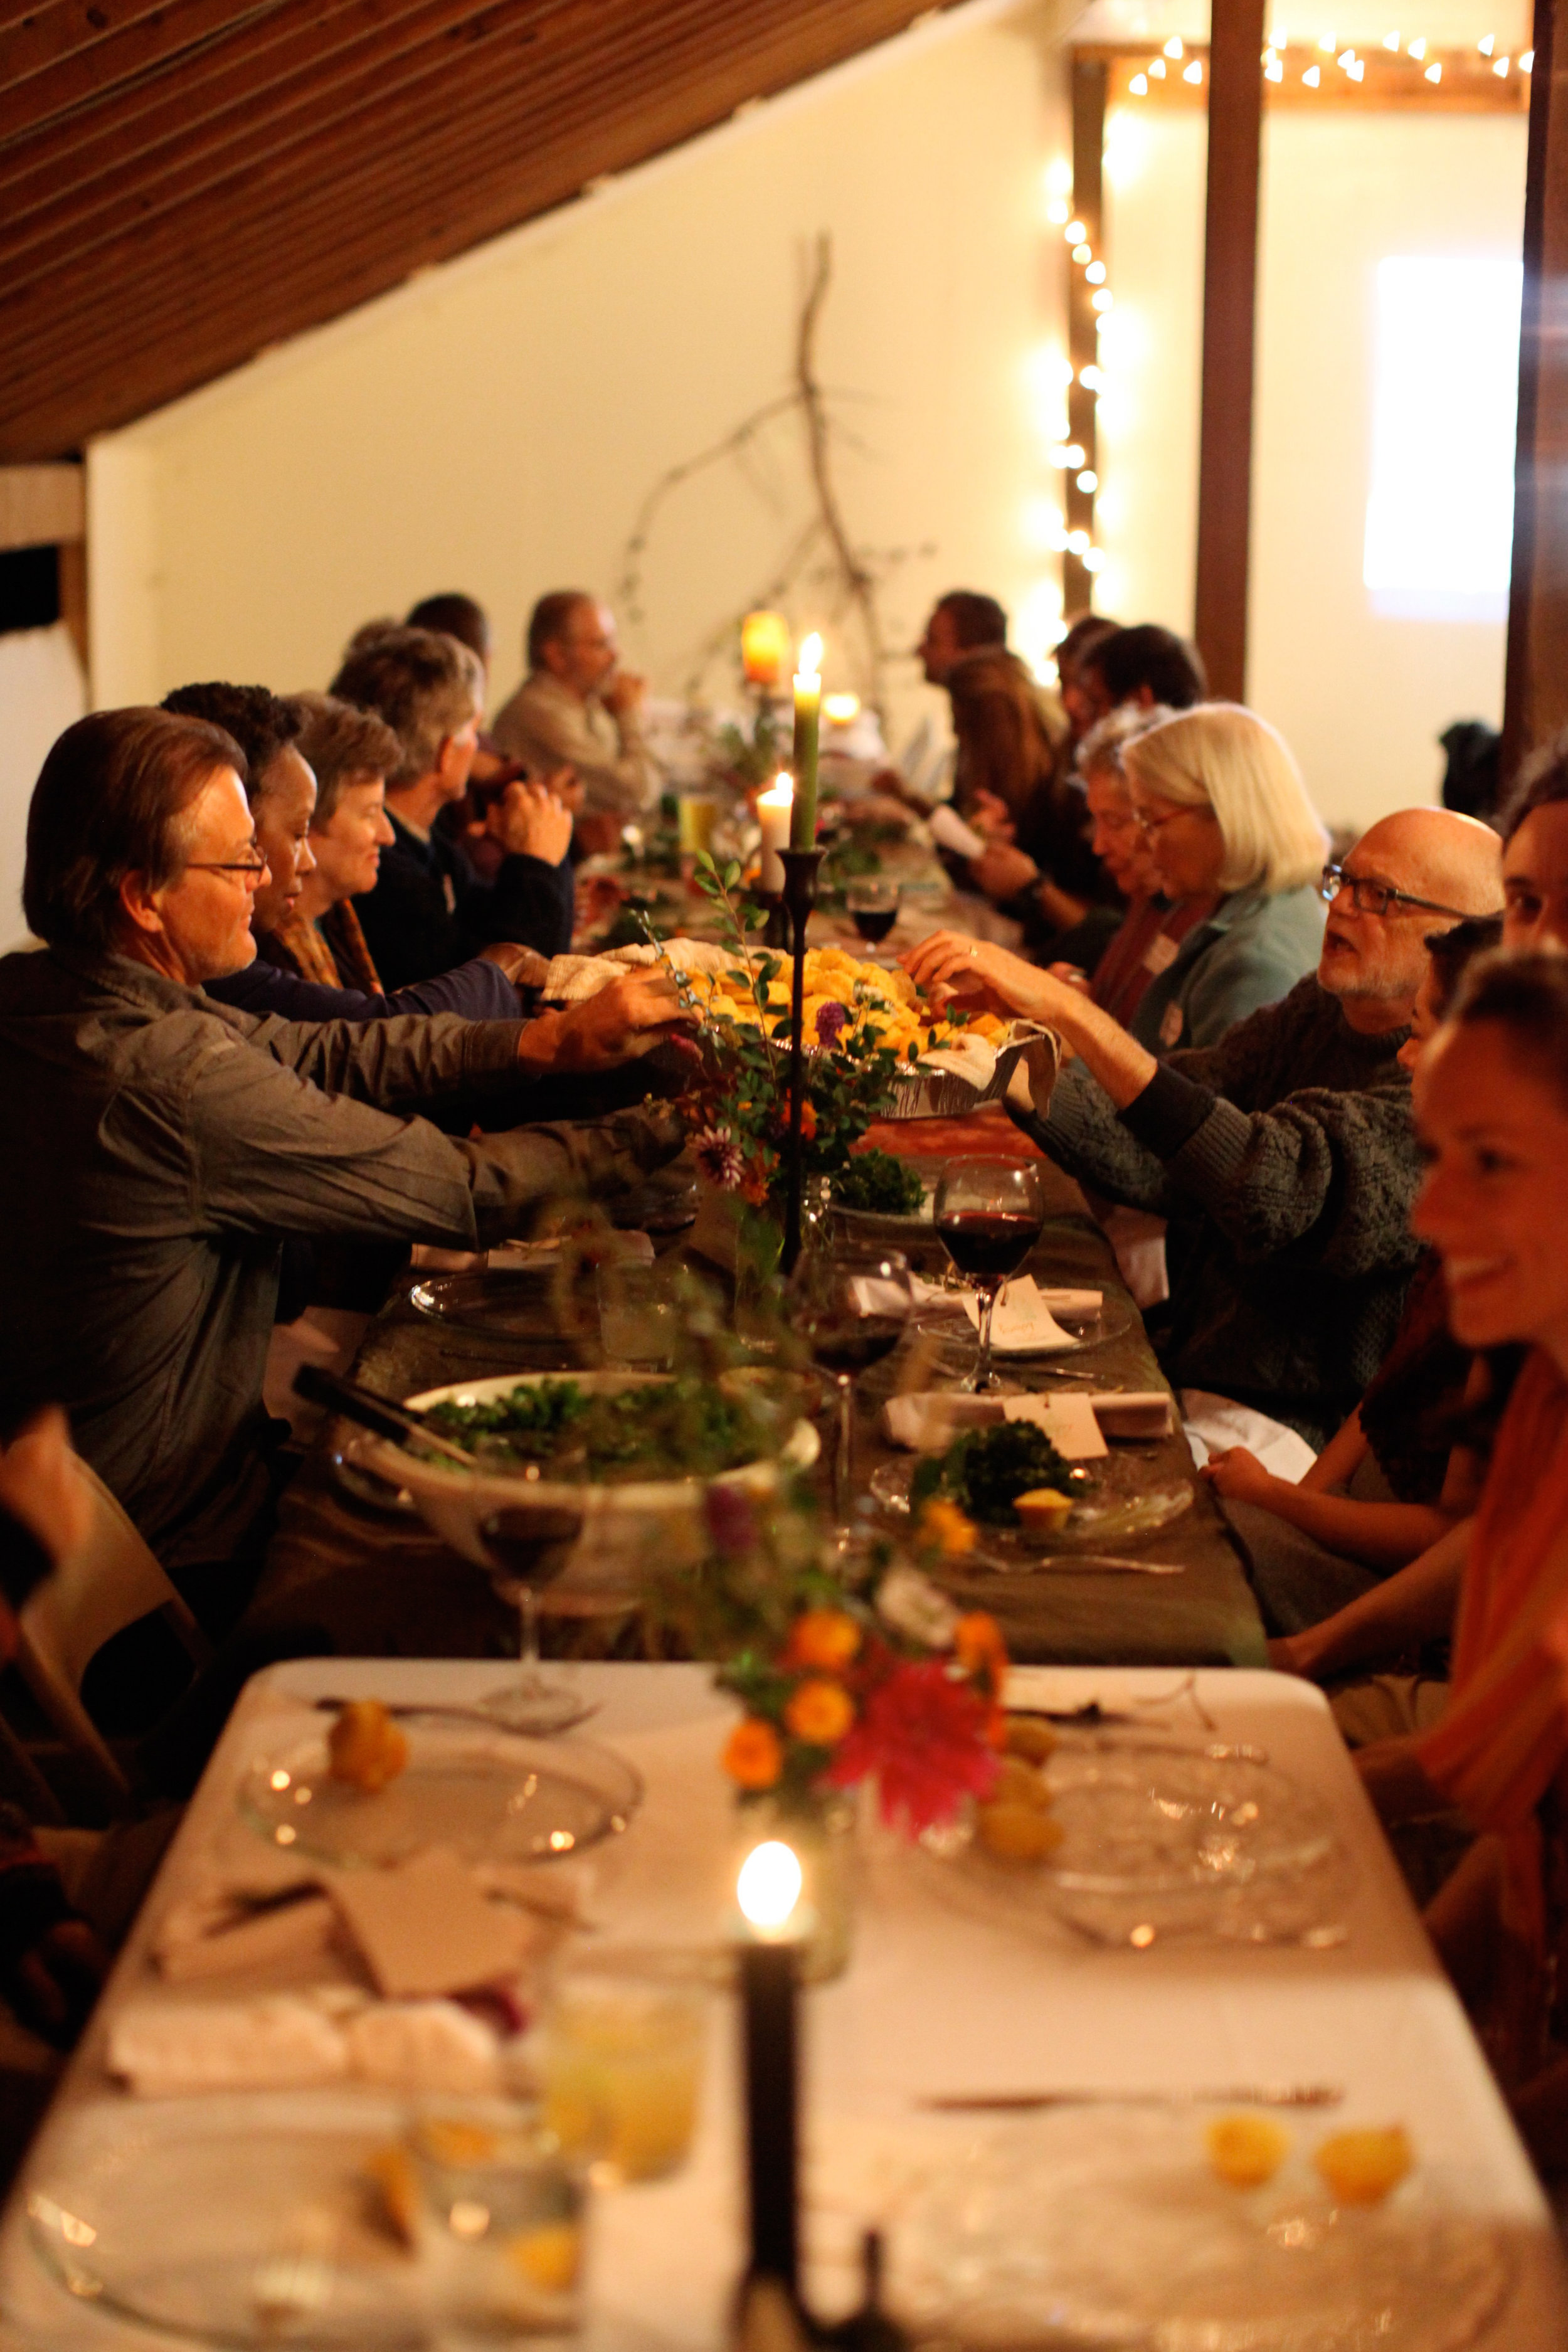 fundraising+dinner+table+w+guests+2014-+2-3.jpg